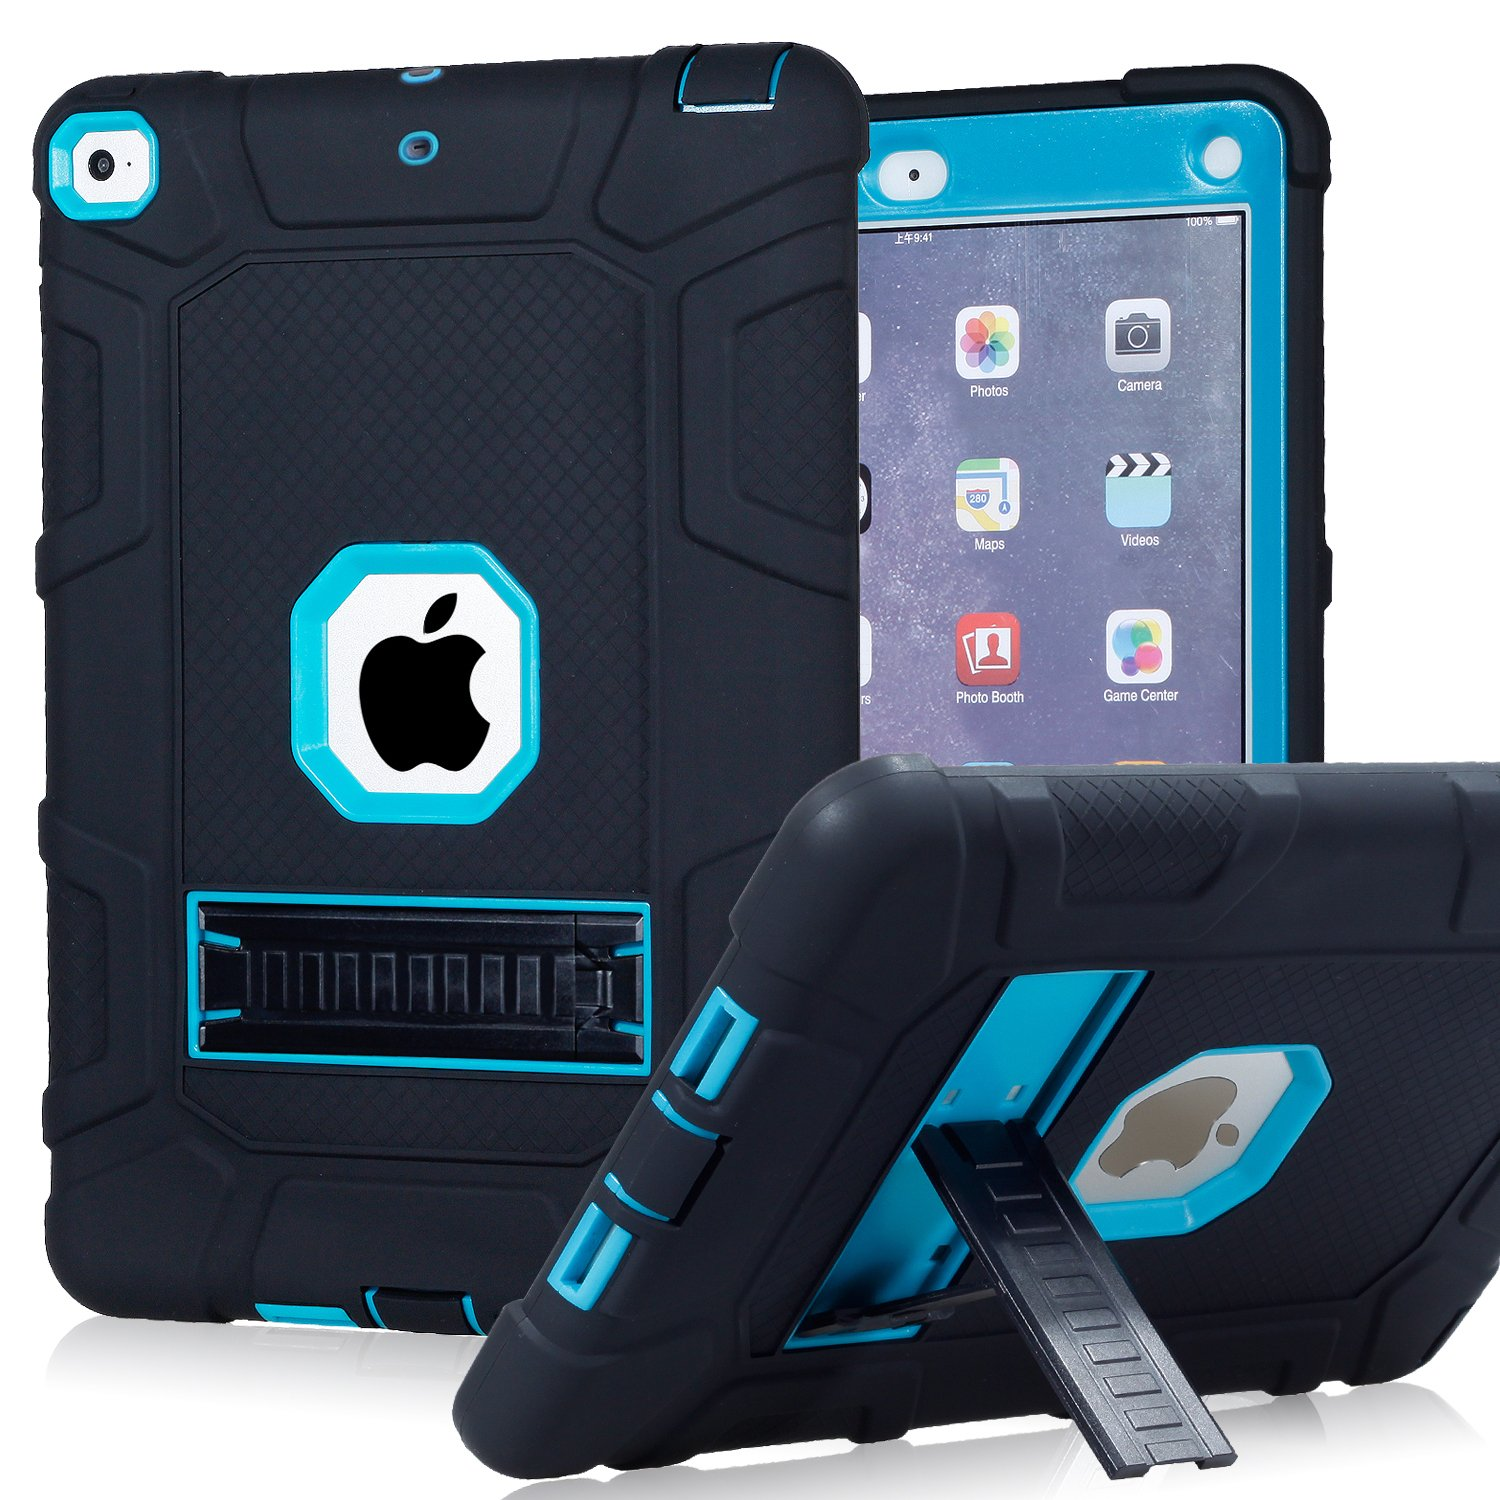 iPad 6th Generation Cases, iPad 2018 Case, iPad 9.7 Inch Case,Hybrid Shockproof Rugged Drop Protection Cover Built with Kickstand for New iPad 9.7 inch A1893/A1954/A1822,/A1823 (Navy) PPSHA